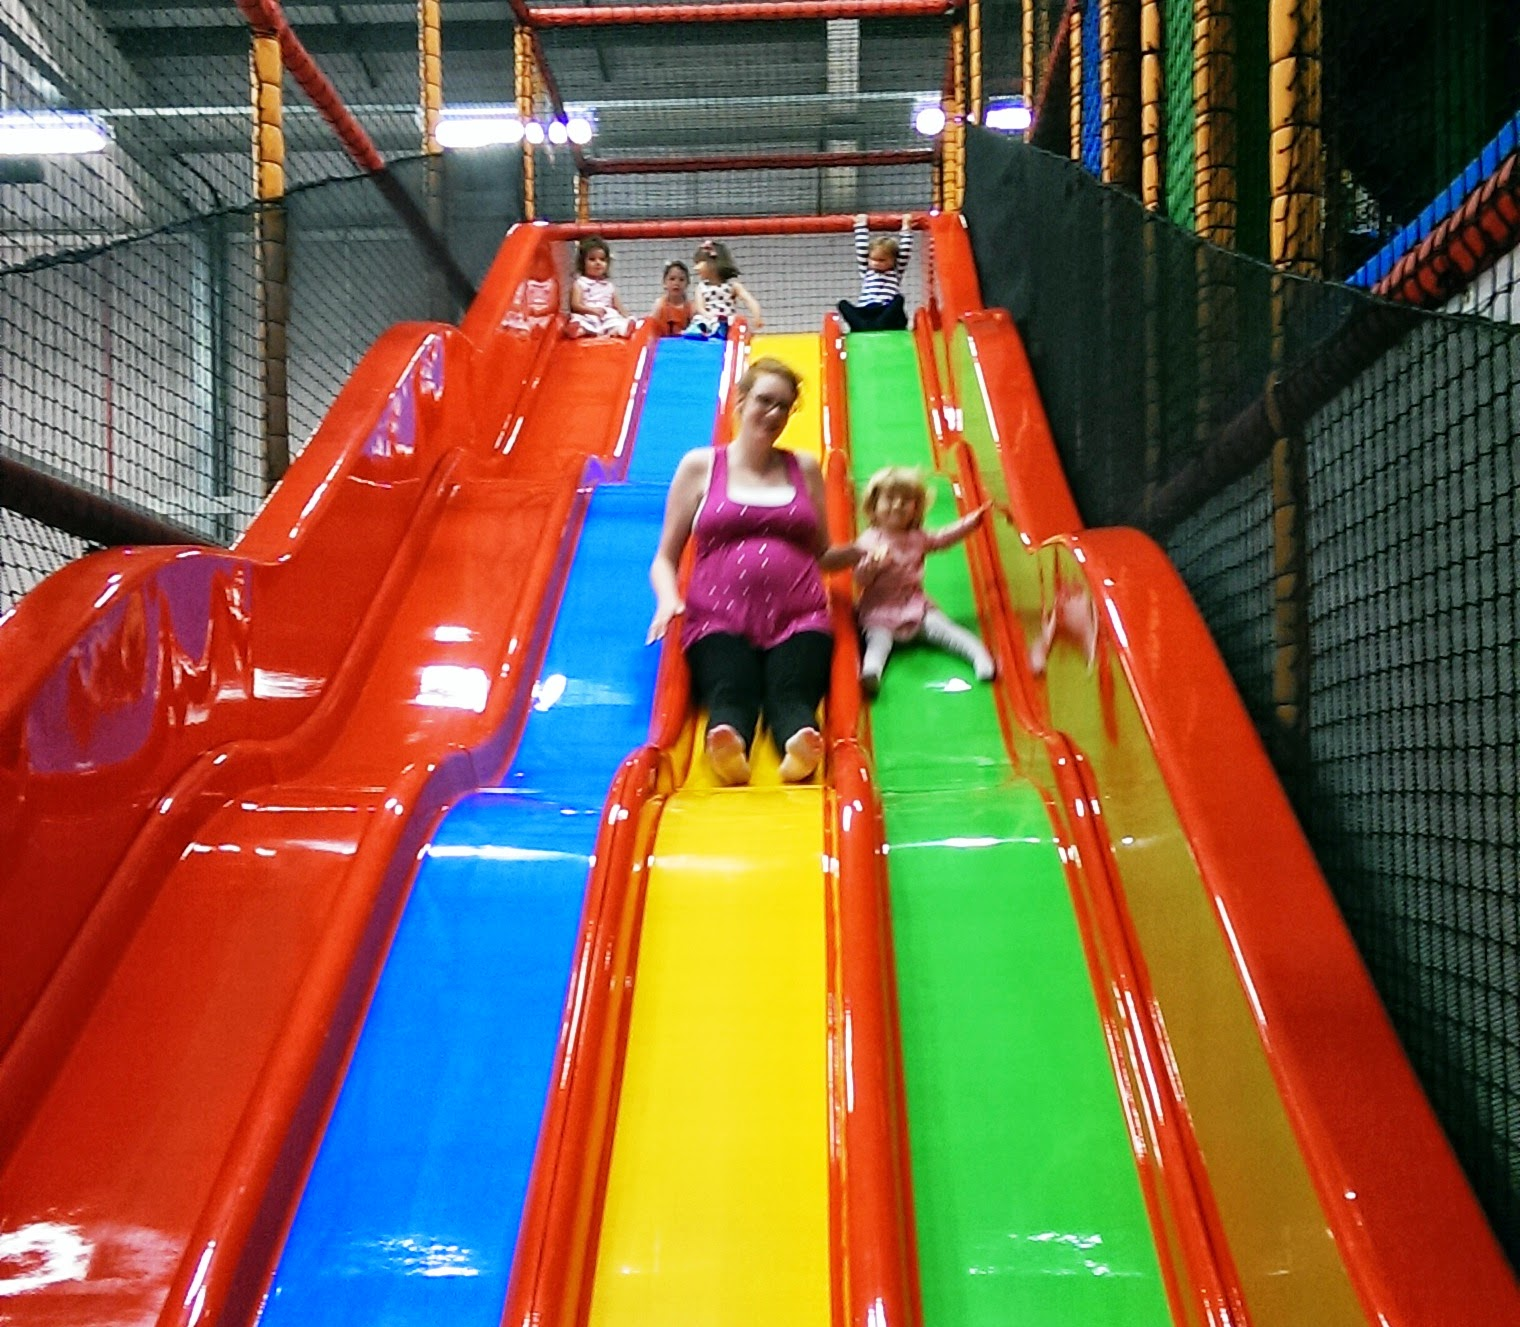 Mum and Eva on the slide at softplay